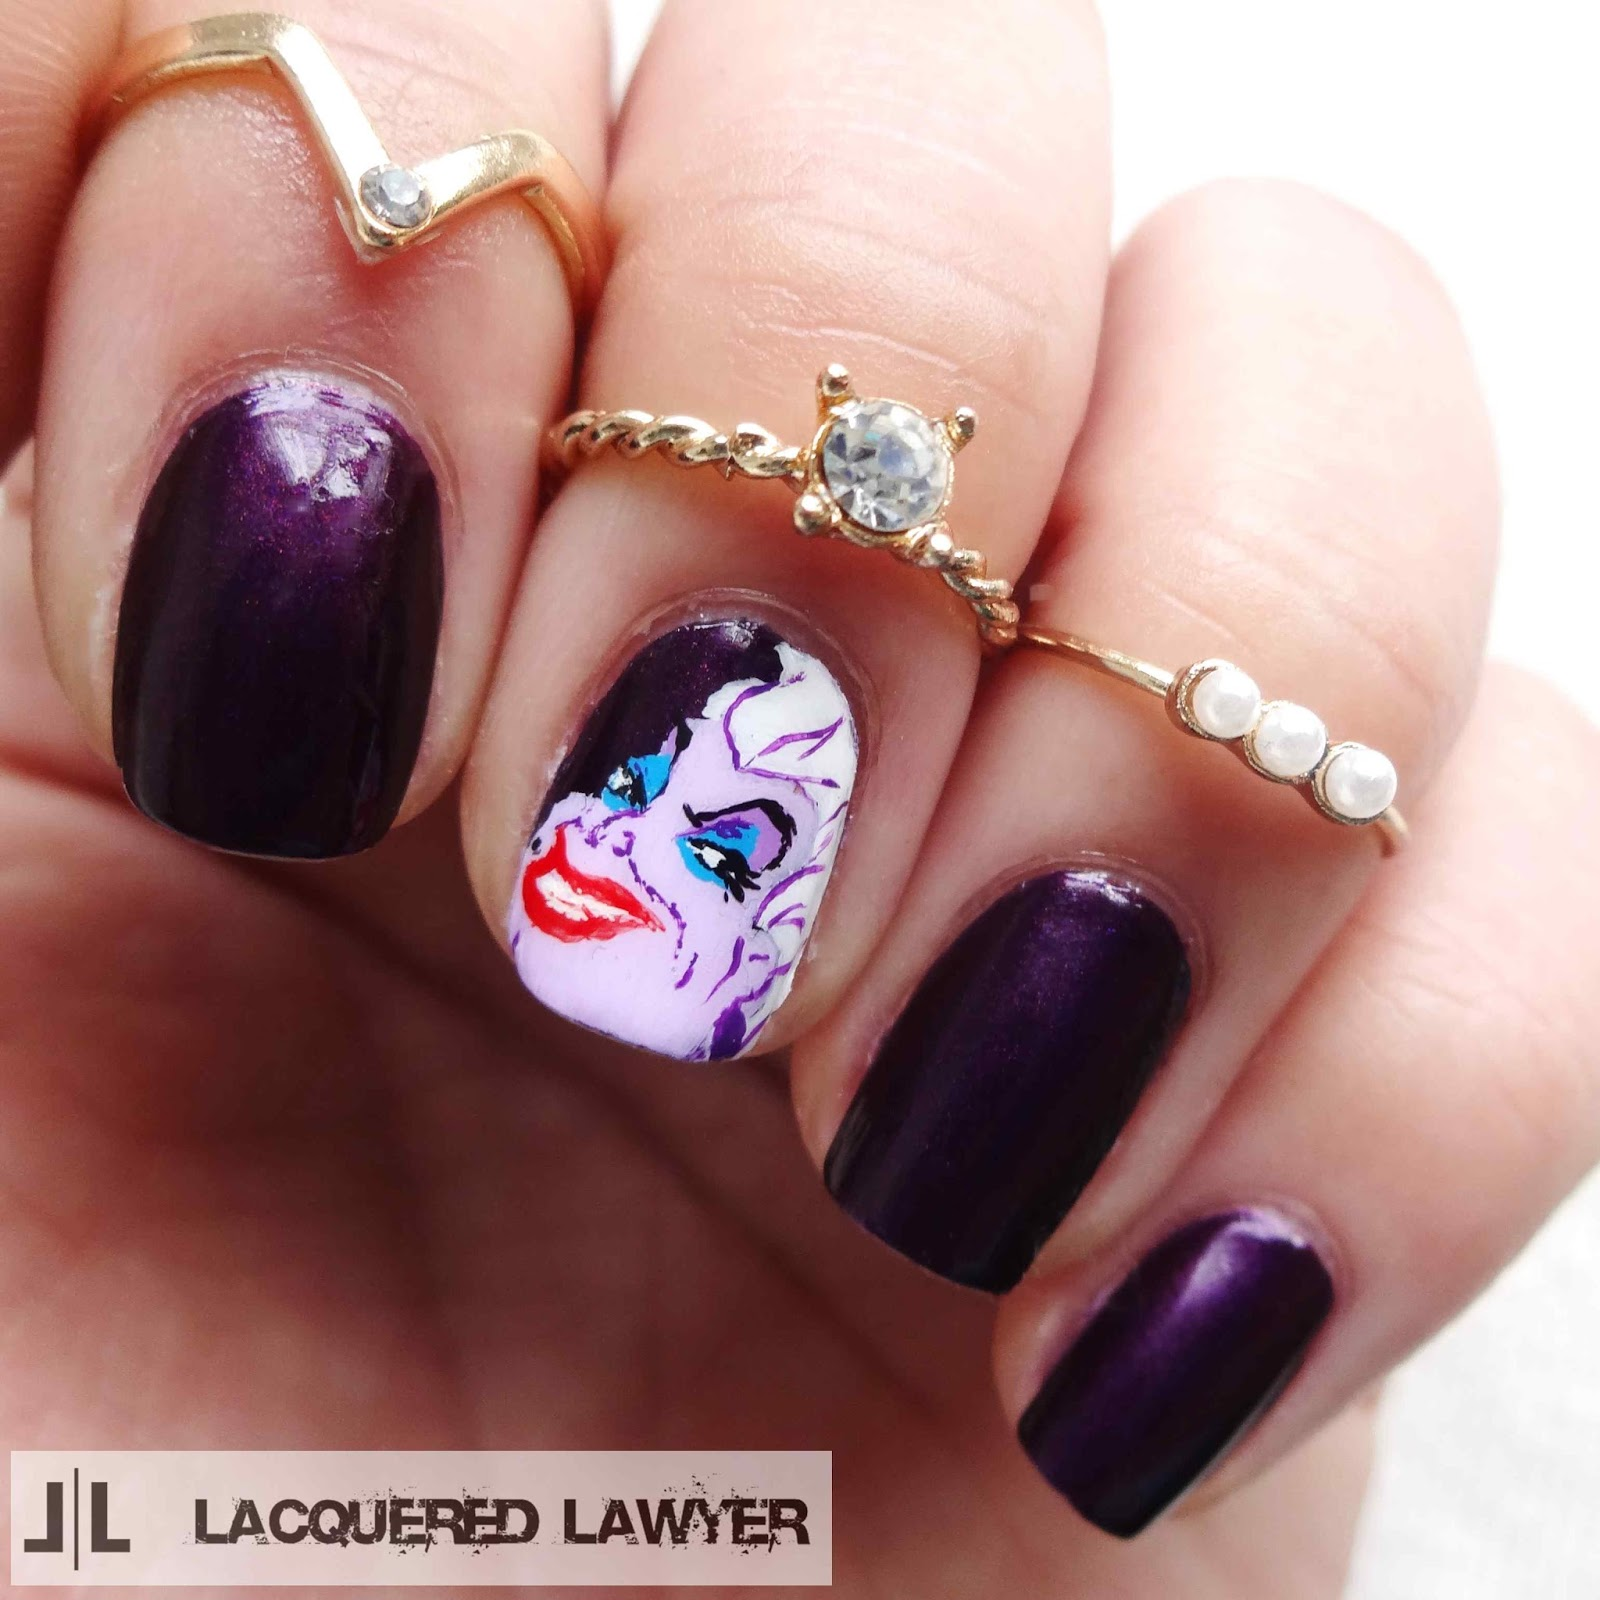 Ursula Little Mermaid Nail Art